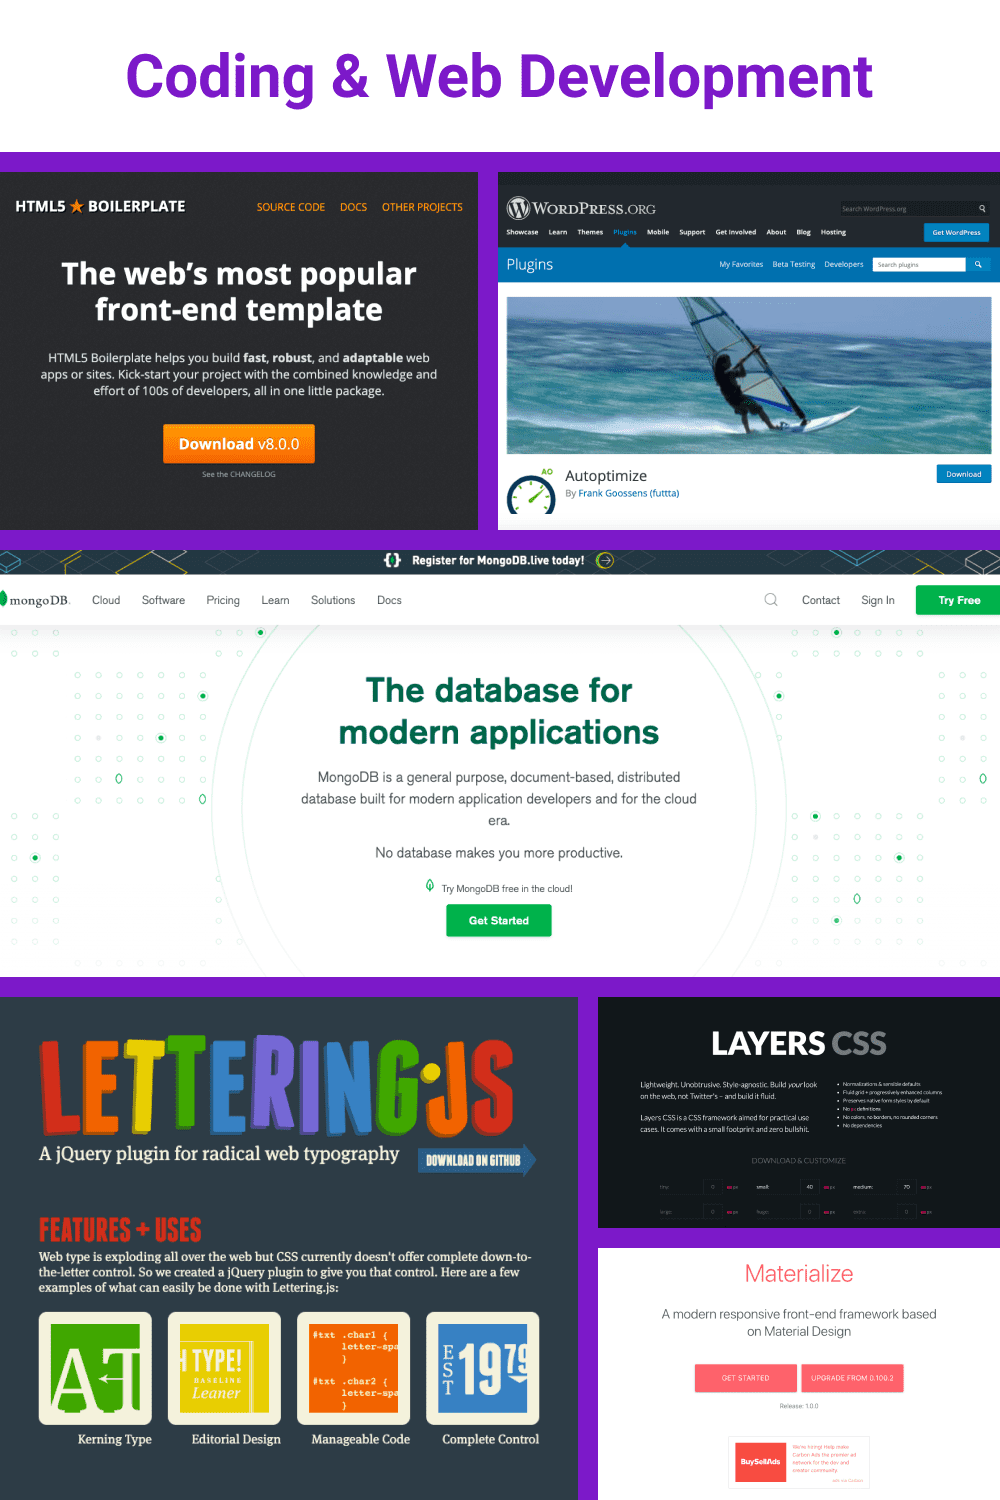 Tools for coding and programming.